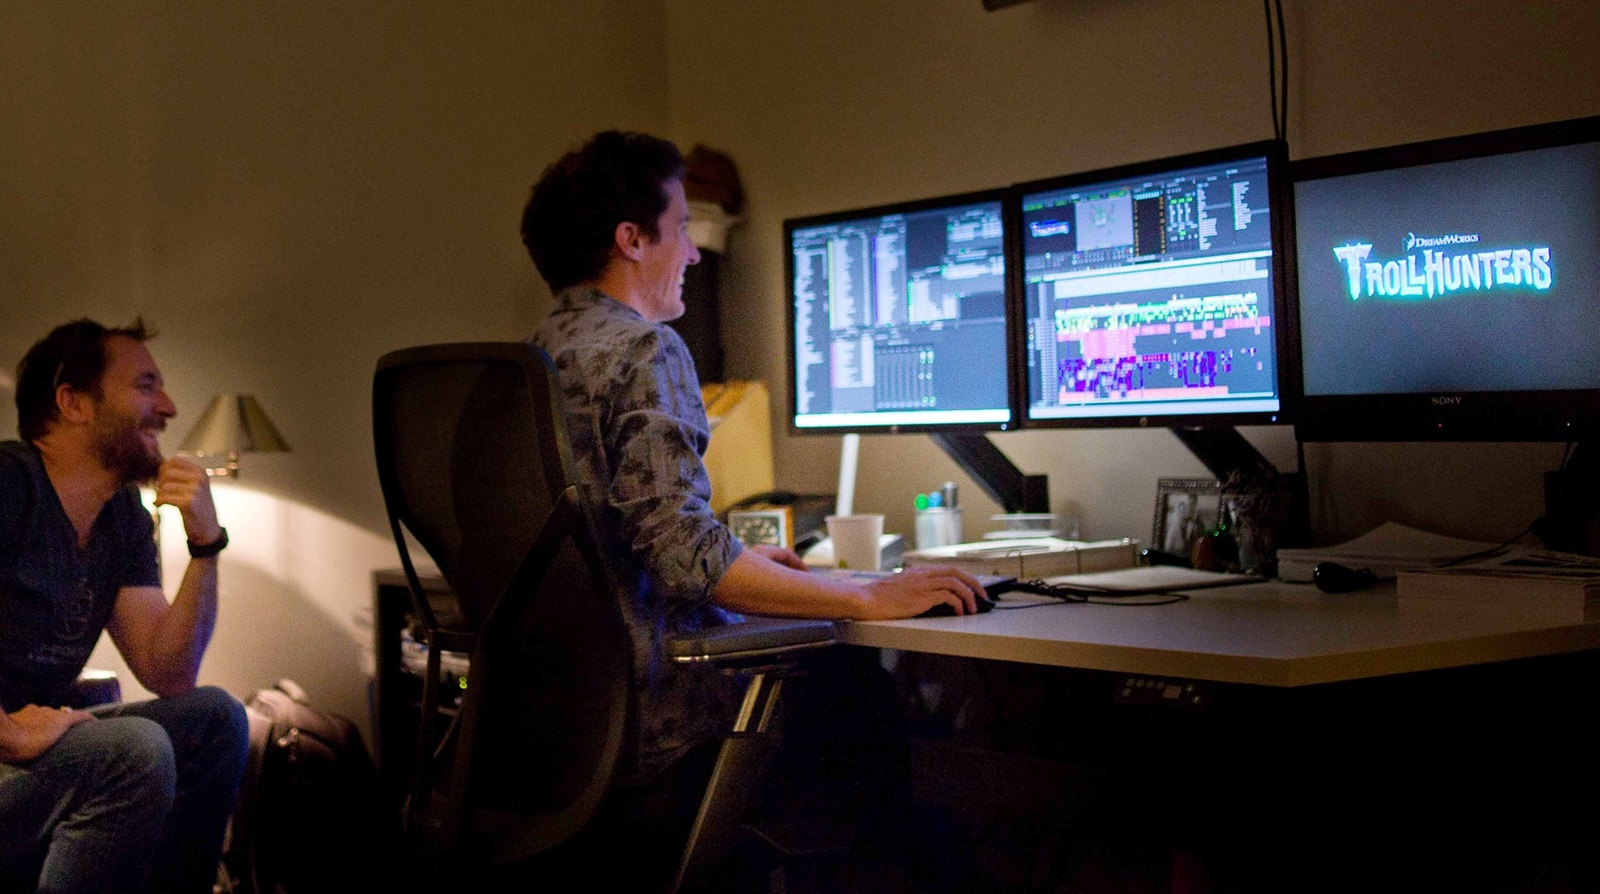 Graham Fisher a video editor using Media Composer in TV production video editing